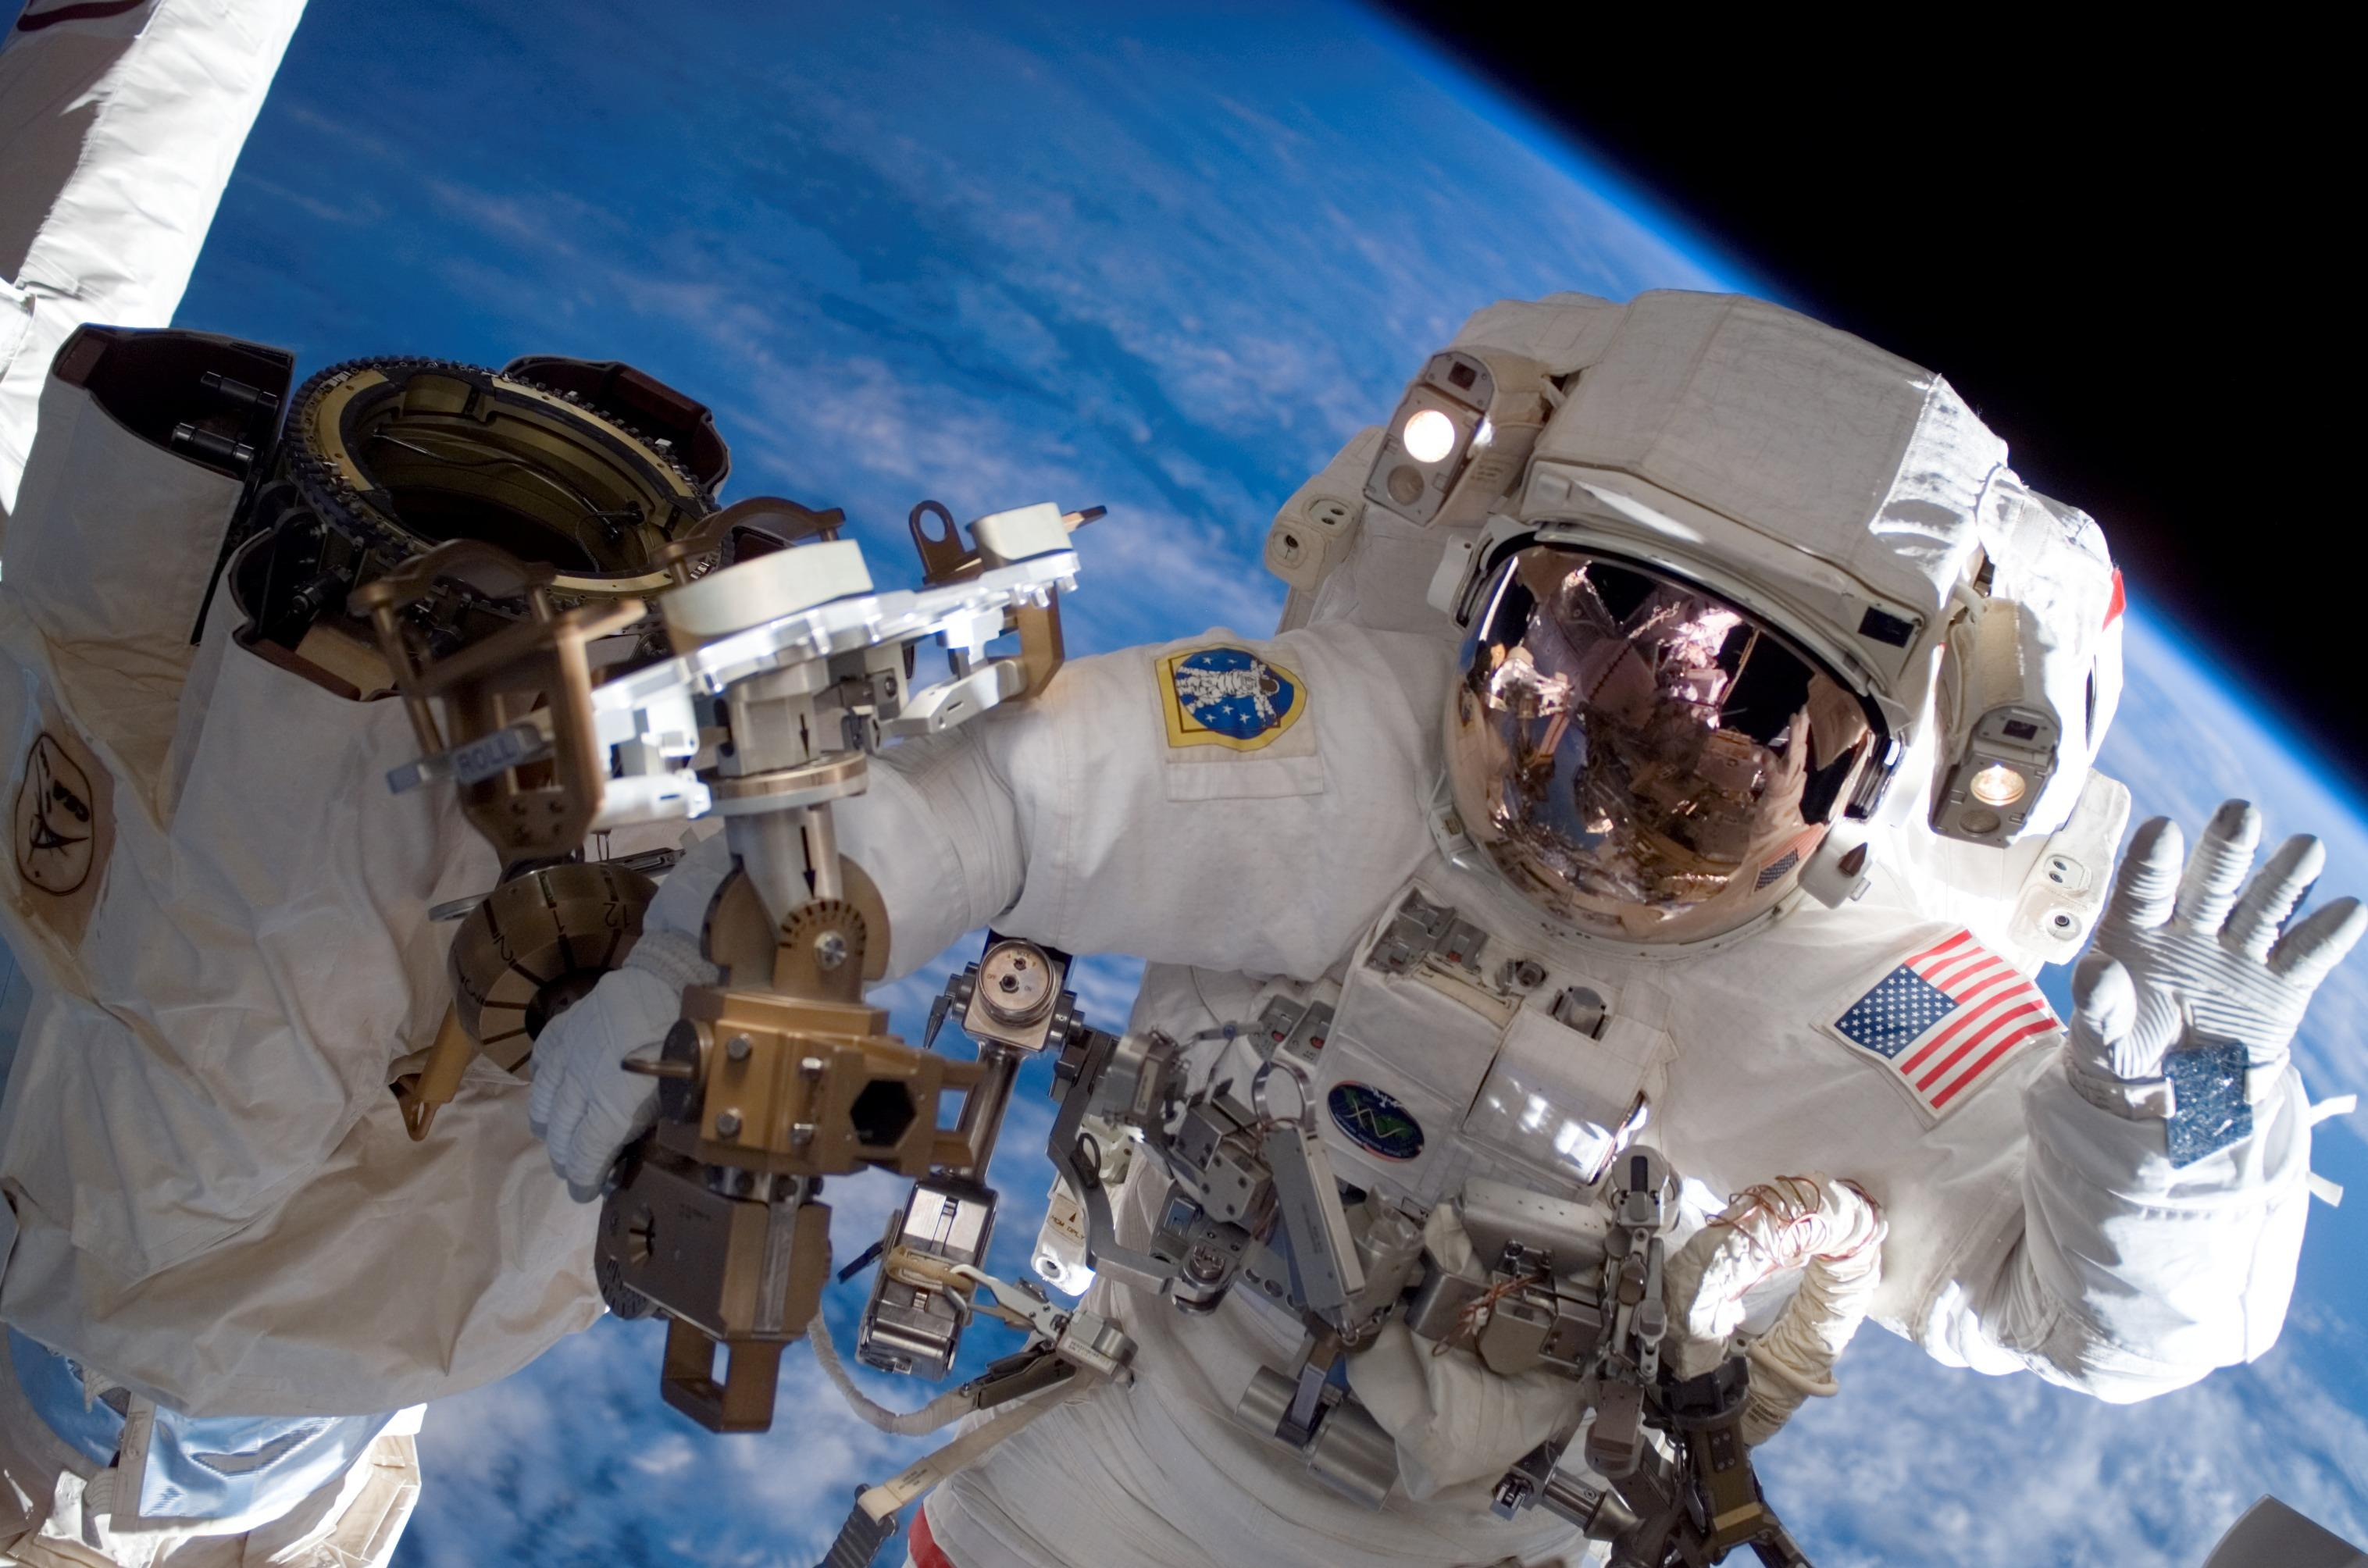 Space Station Spacesuit Image Gallery   NASA